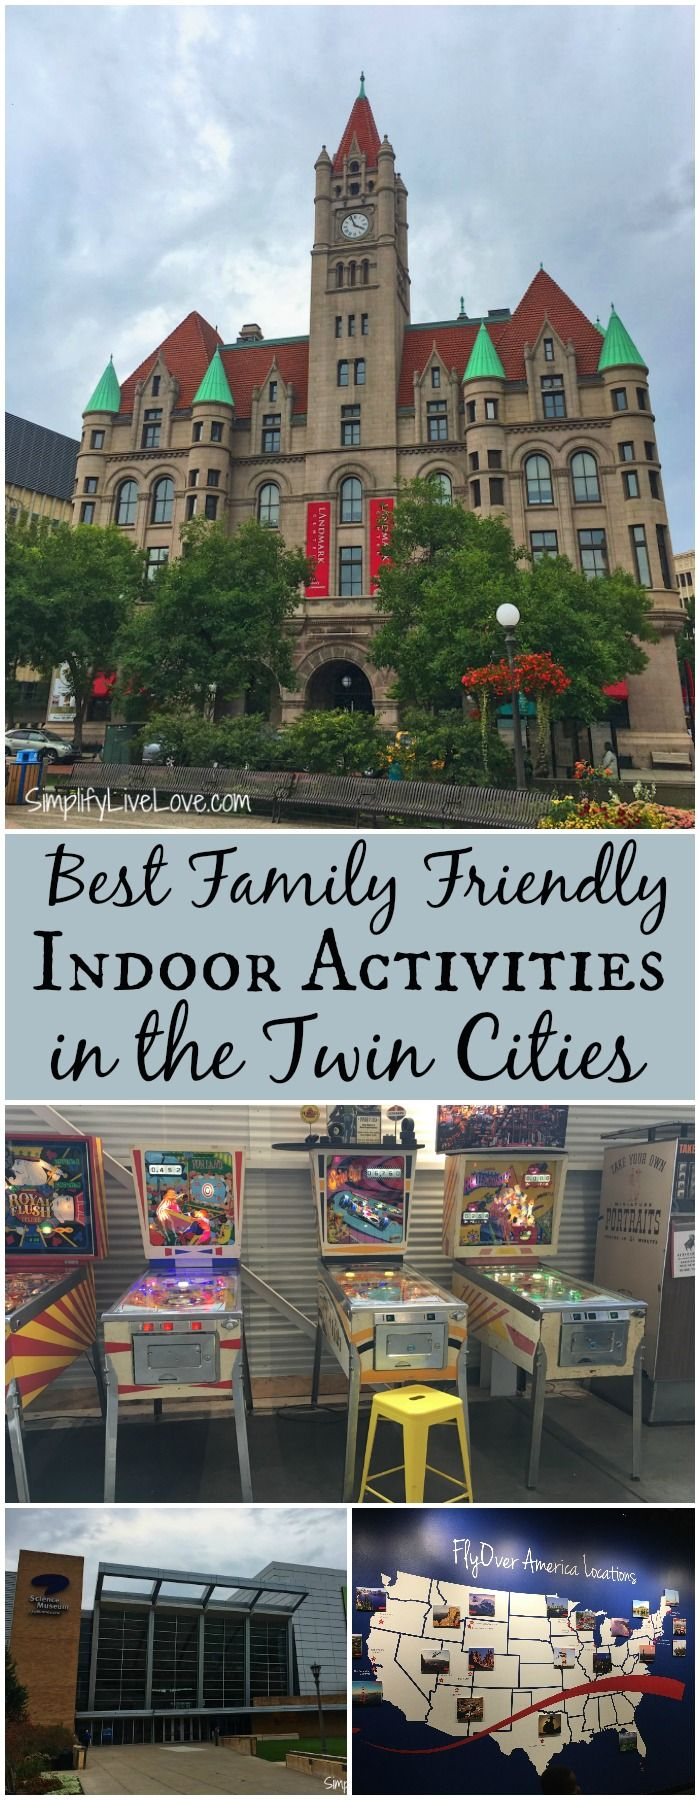 Looking for family friendly indoor activities in the Twin Cities (Minneapolis, USA)? Look no further. Your older kids and fun loving adults will enjoy everything on this list! A lot of the activities are free and they're all perfect for cold or rainy weather. #TwinCities #Minneapolis